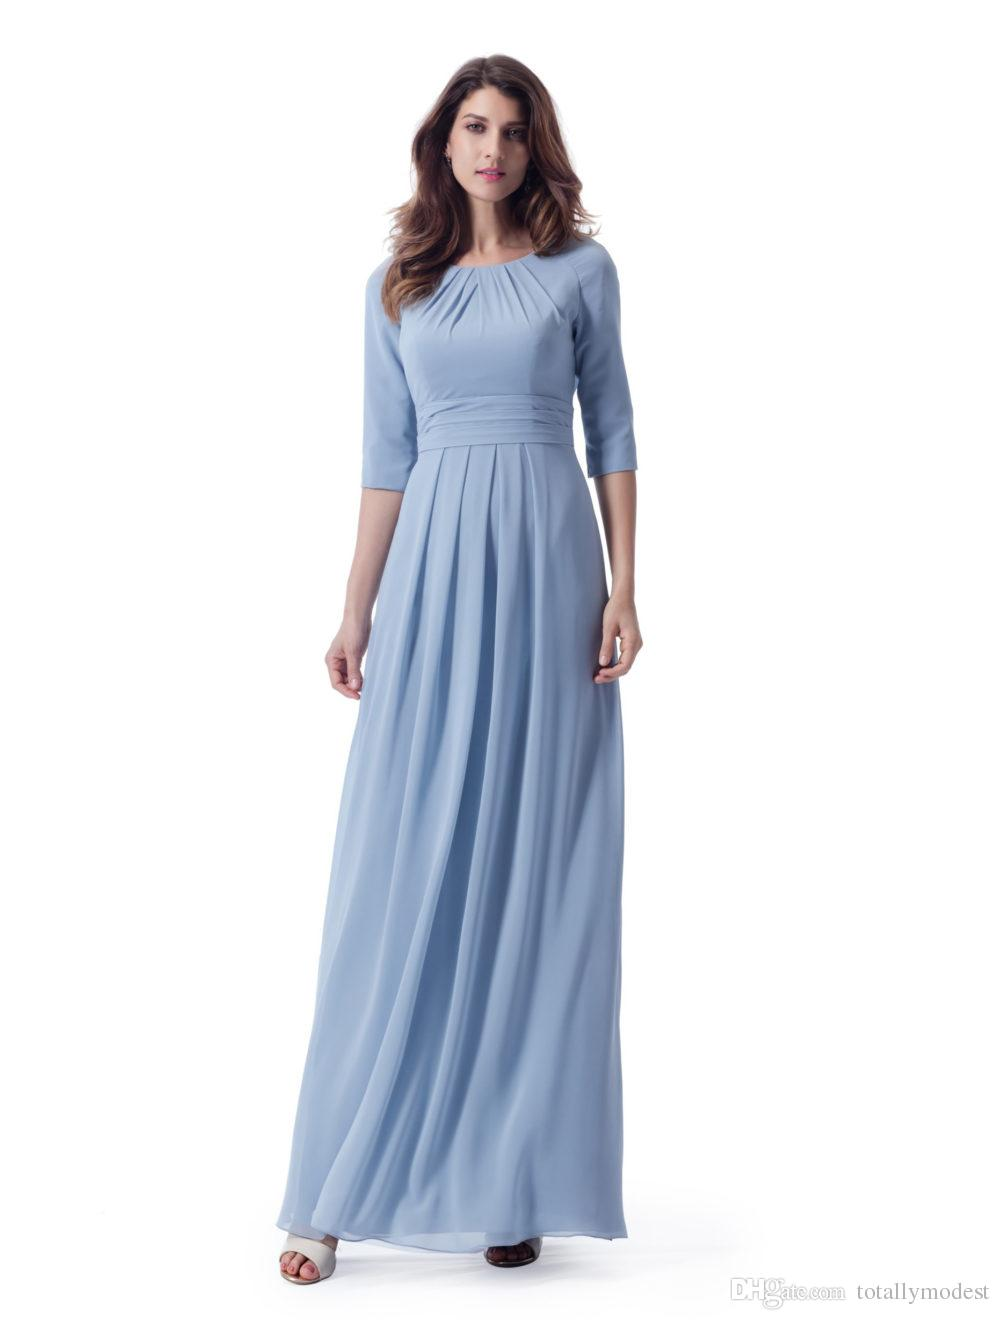 Pastal Blue Long Modest Bridesmaid Dresses With 34 Sleeves Ruched Chiffon Ankle Length Formal Wedding Party Dresses LDS Maids Of Honor Dress